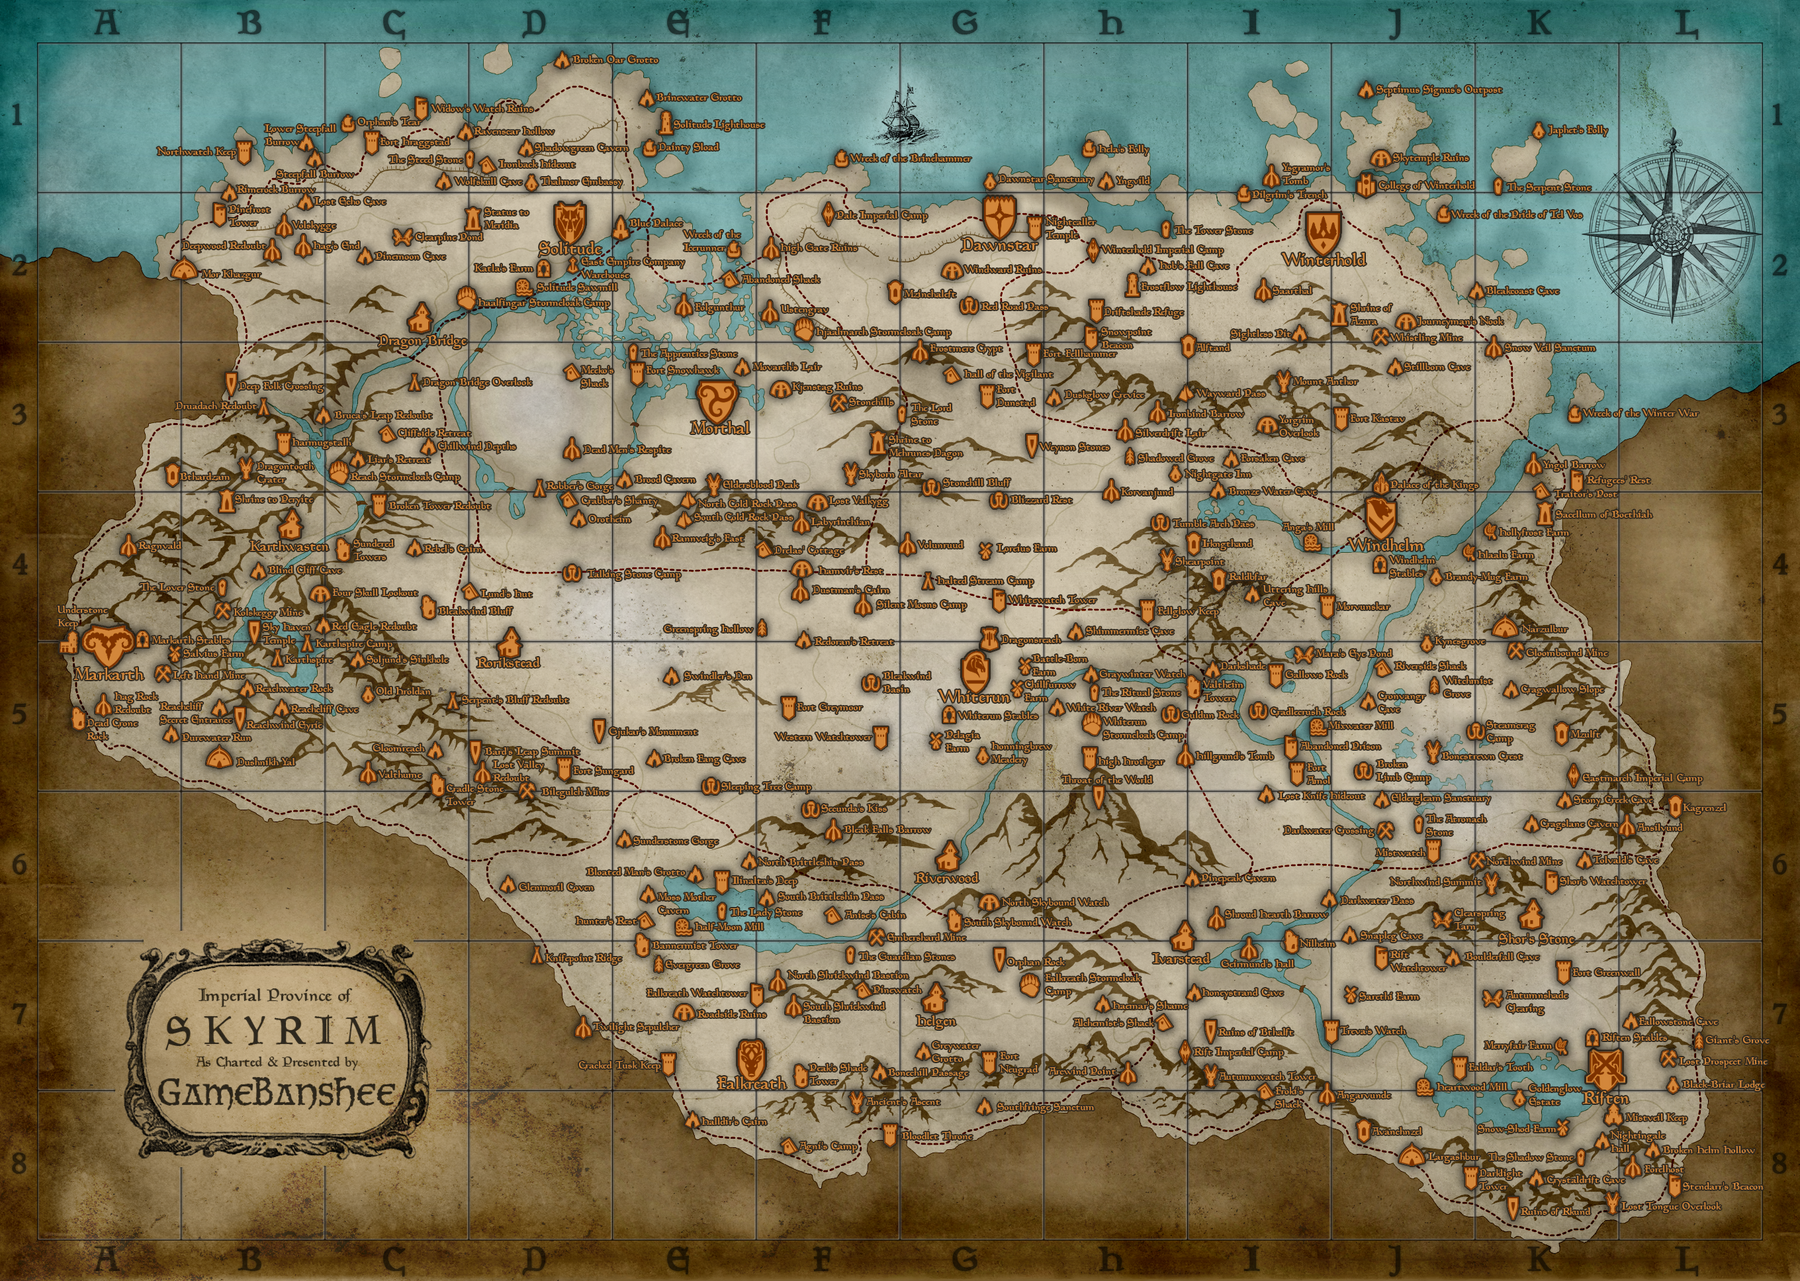 Skyrim Map with All Locations